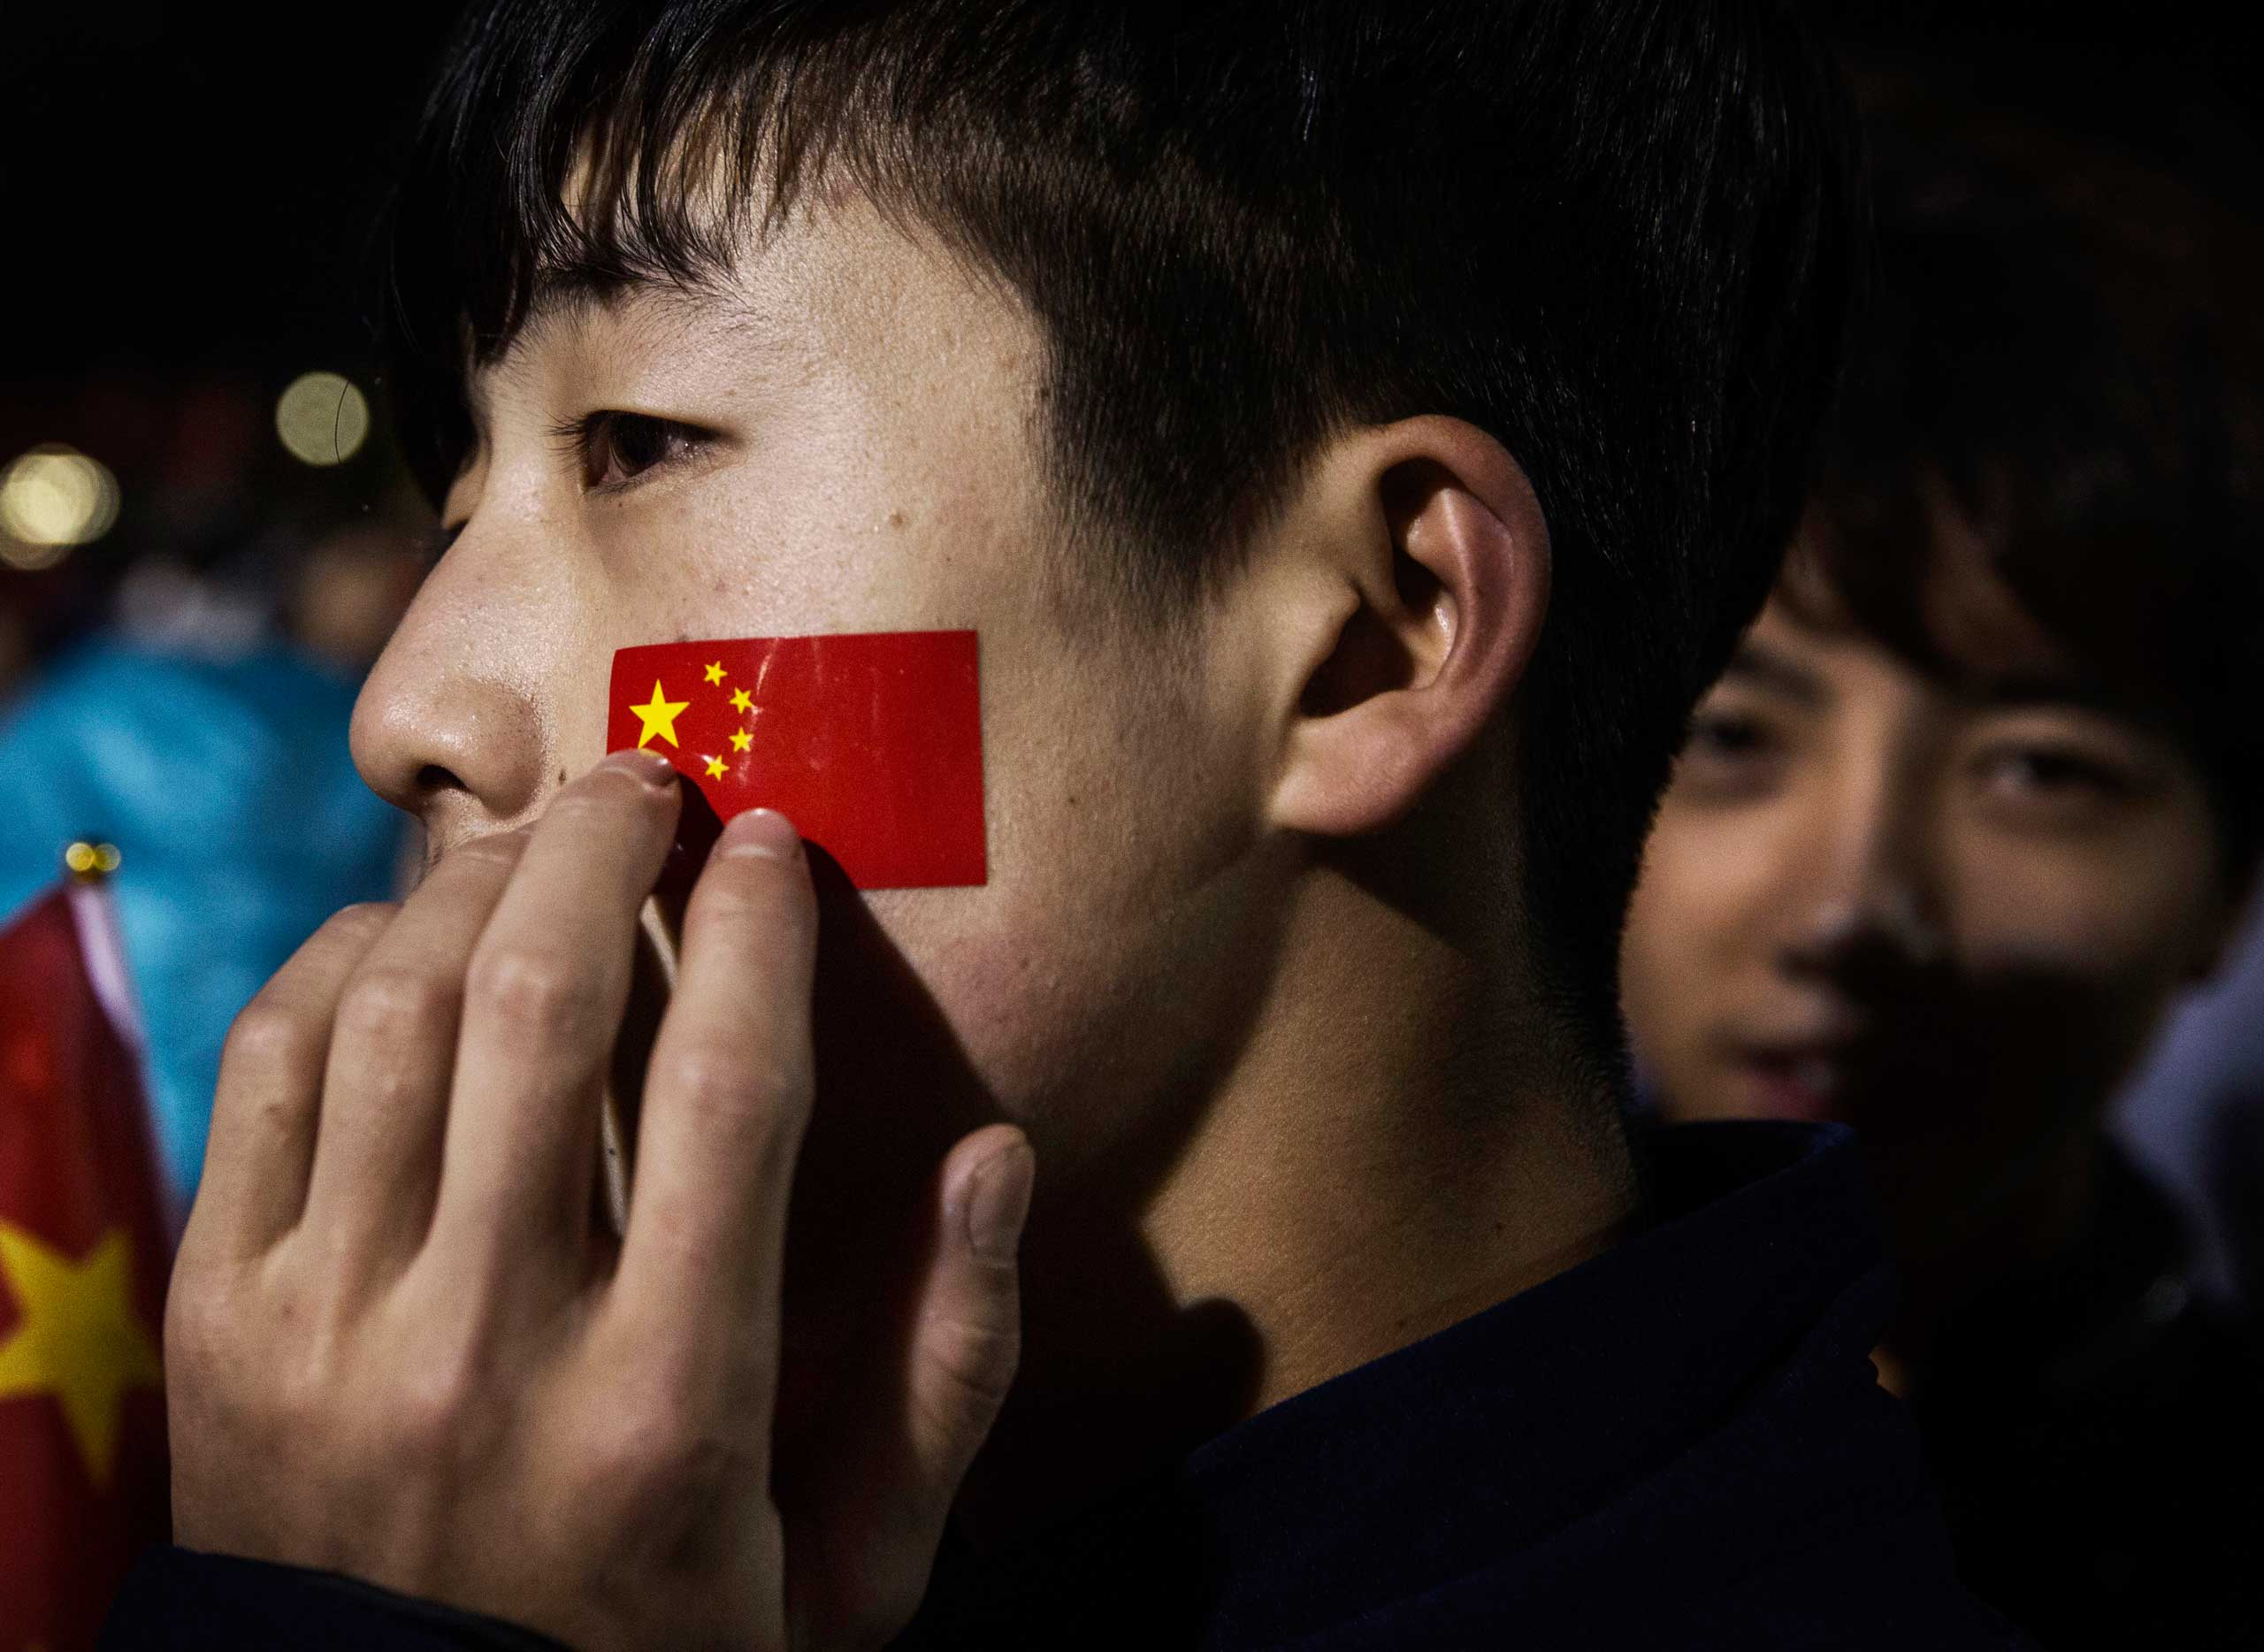 A man touches a flag sticker on his cheek while attending the official flag raising ceremony at Tiananmen Square to mark the 66th National Day in Beijing, on Oct. 1, 2015.